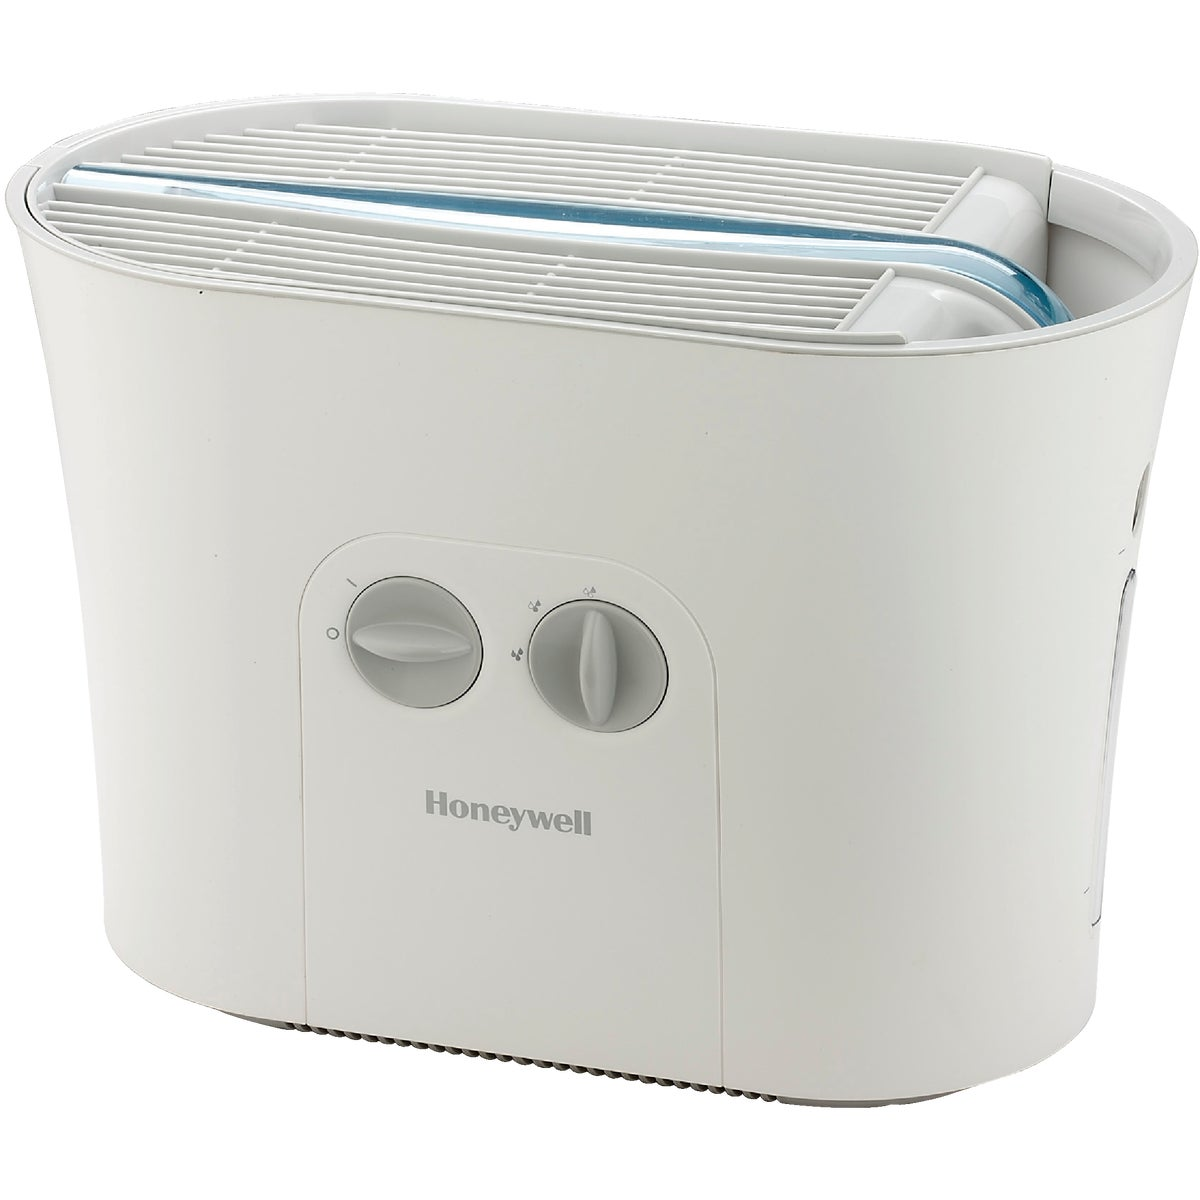 LG COOL MIST HUMIDIFIER - HCM-750 by Kaz Home Environment